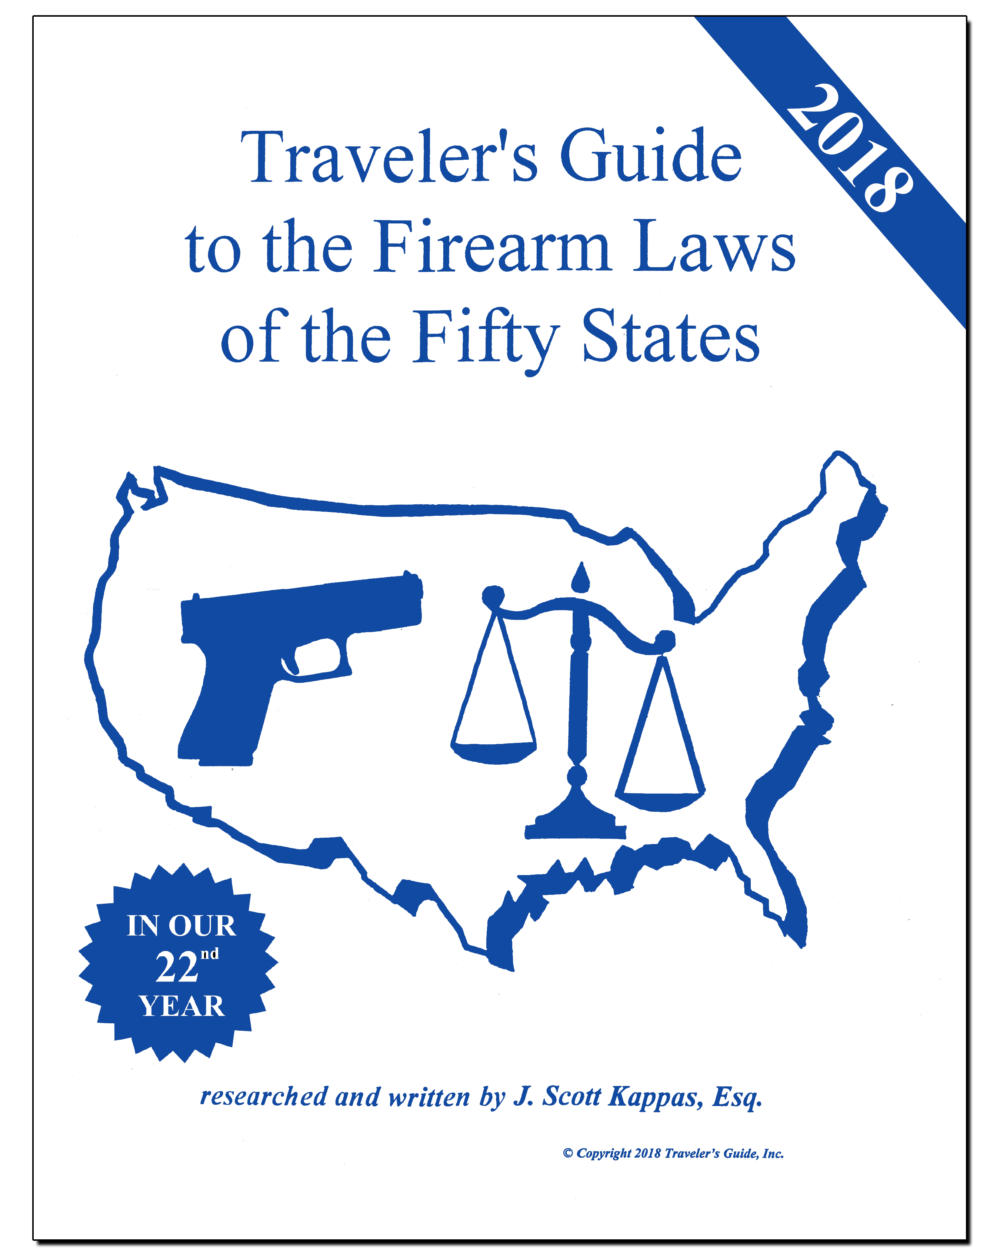 Travlers Guide to Firearm Laws